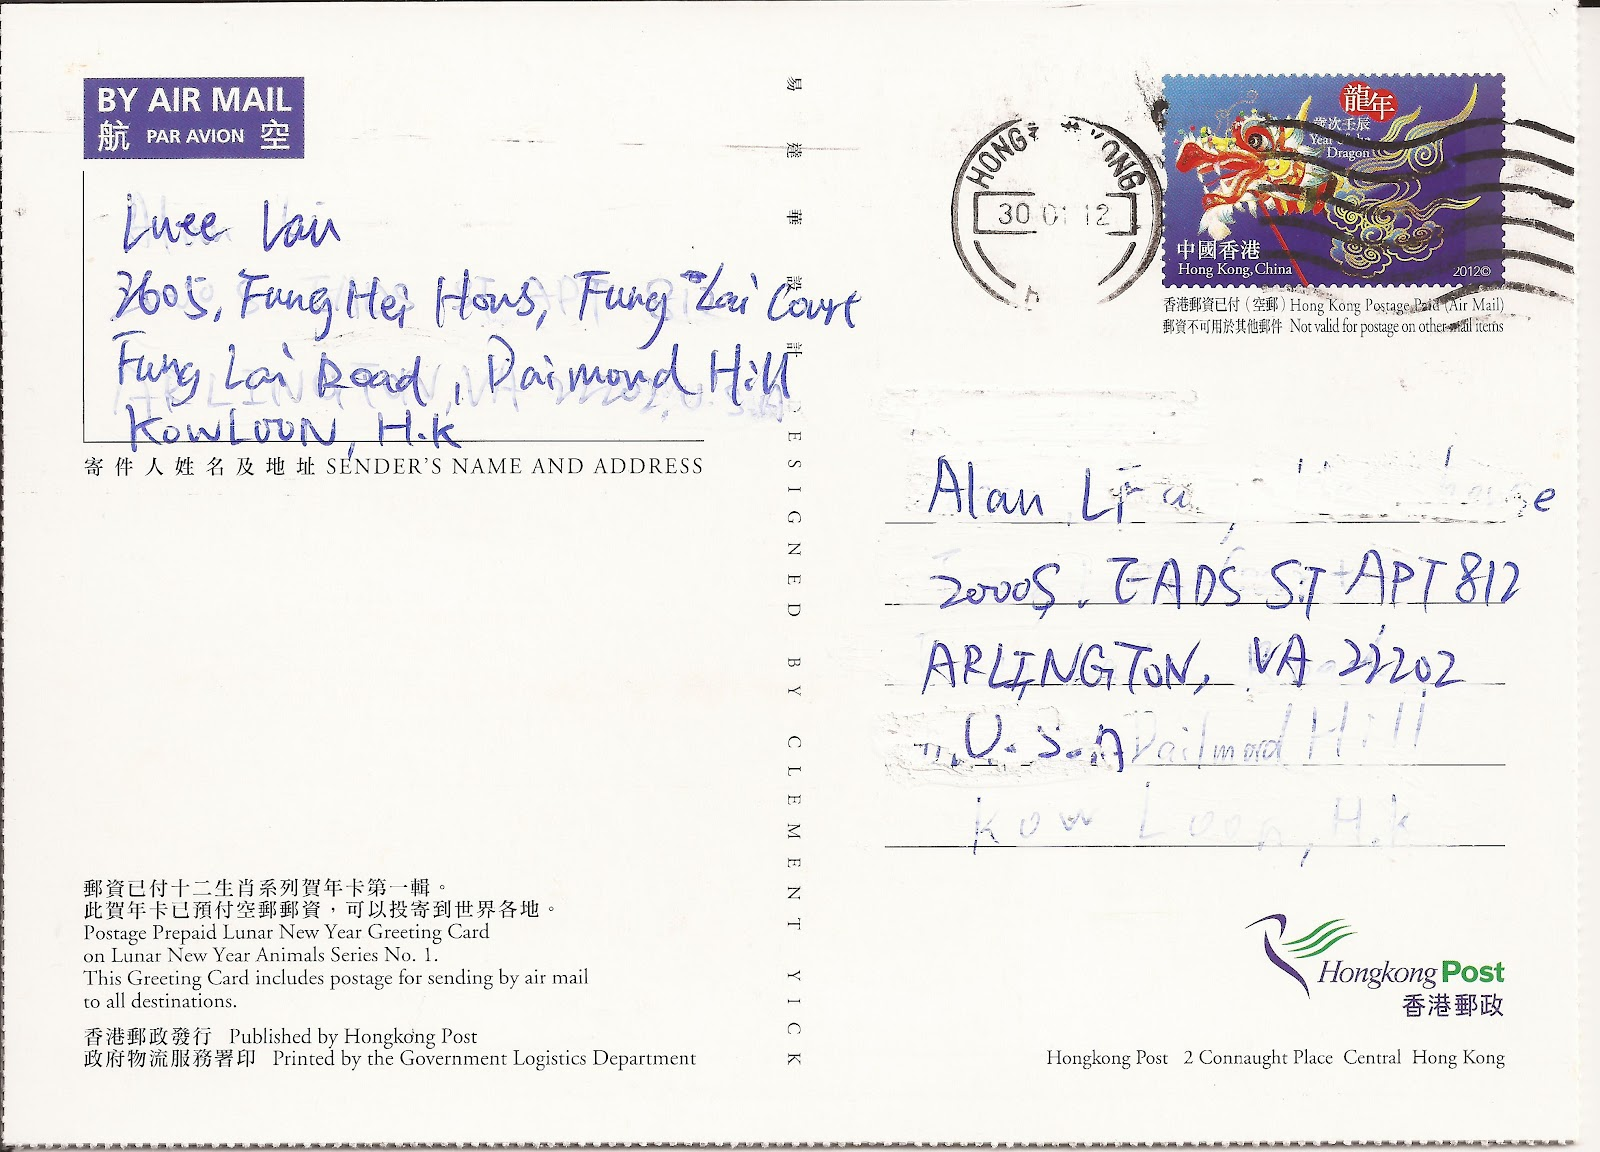 Sunheals Stamps Exchange Exchanging Stamps Fdc Covers And